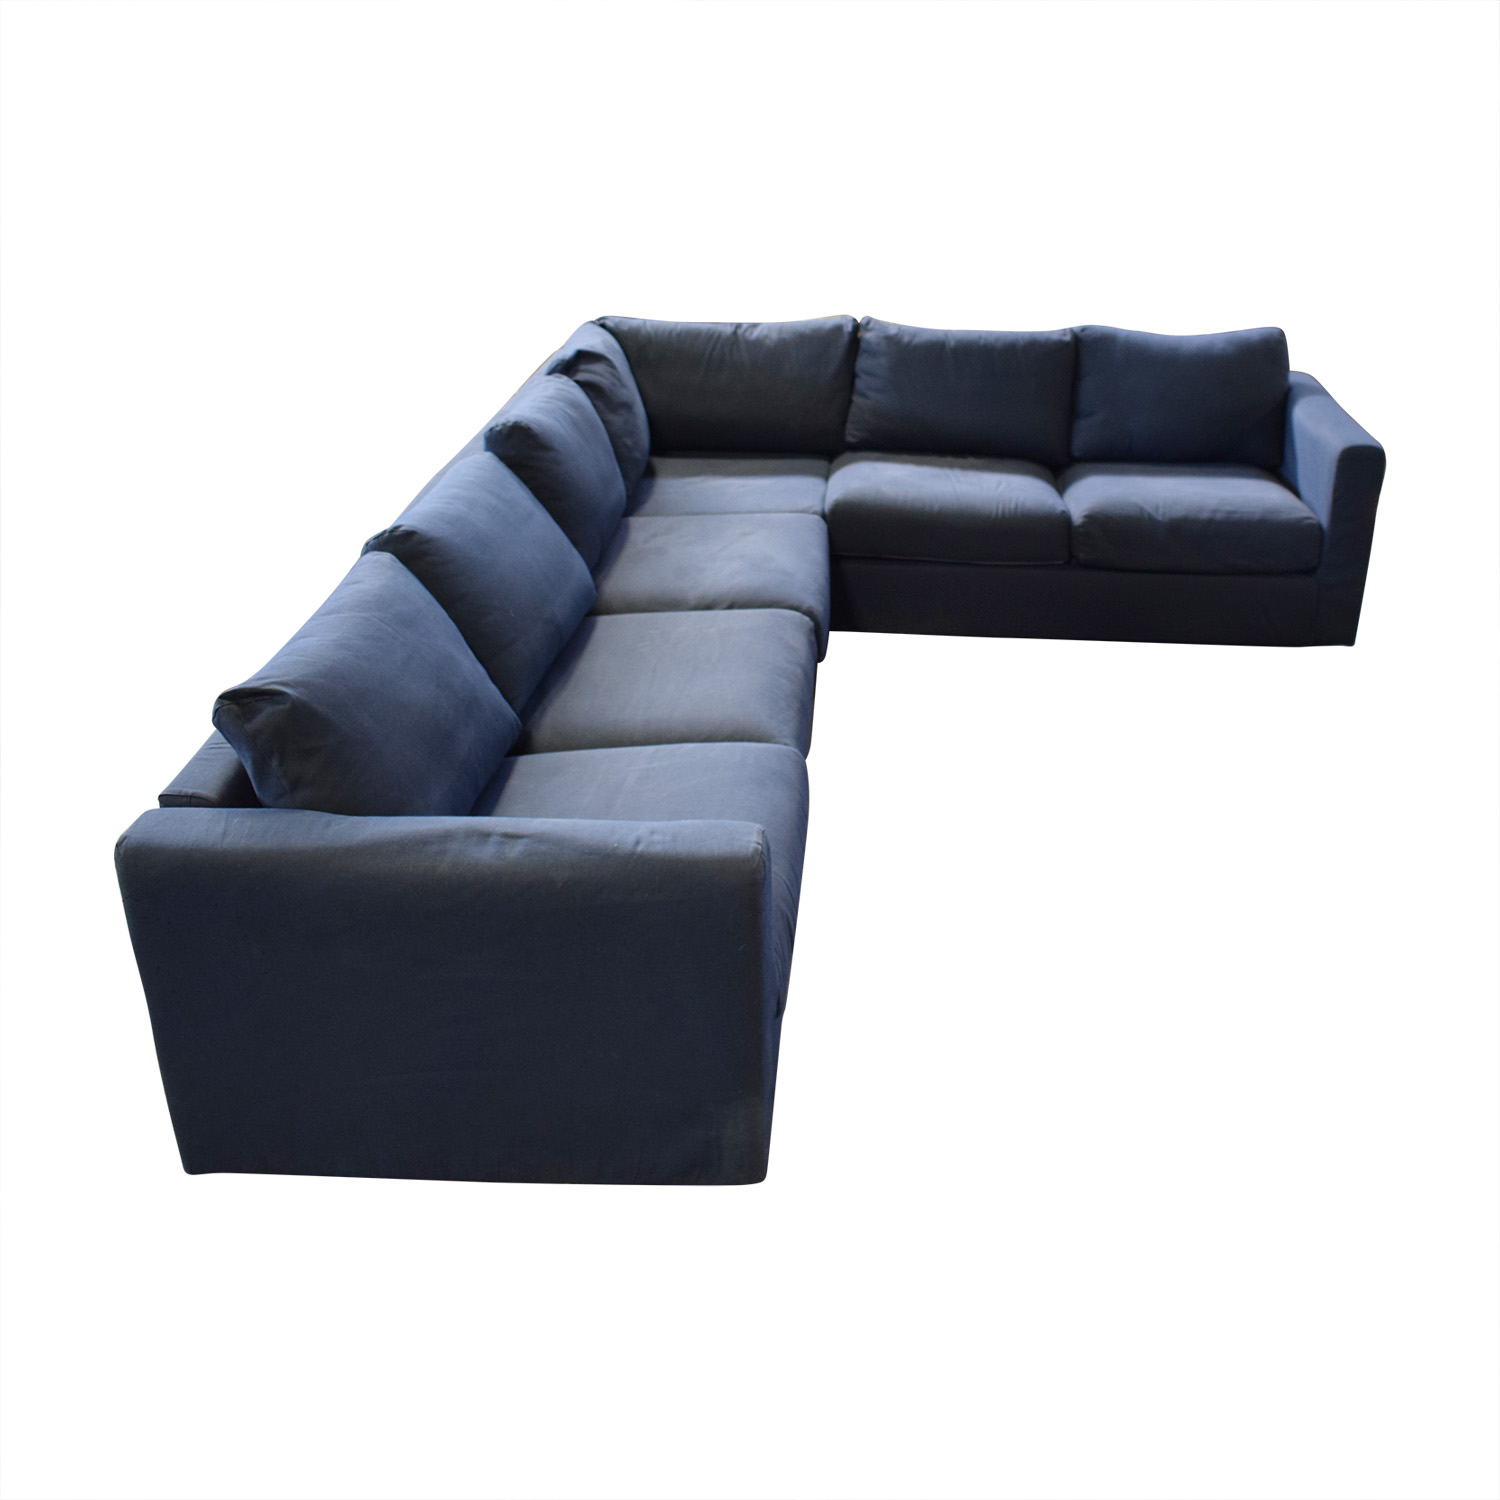 Ikea Vimle Three Piece Sectional / Sectionals